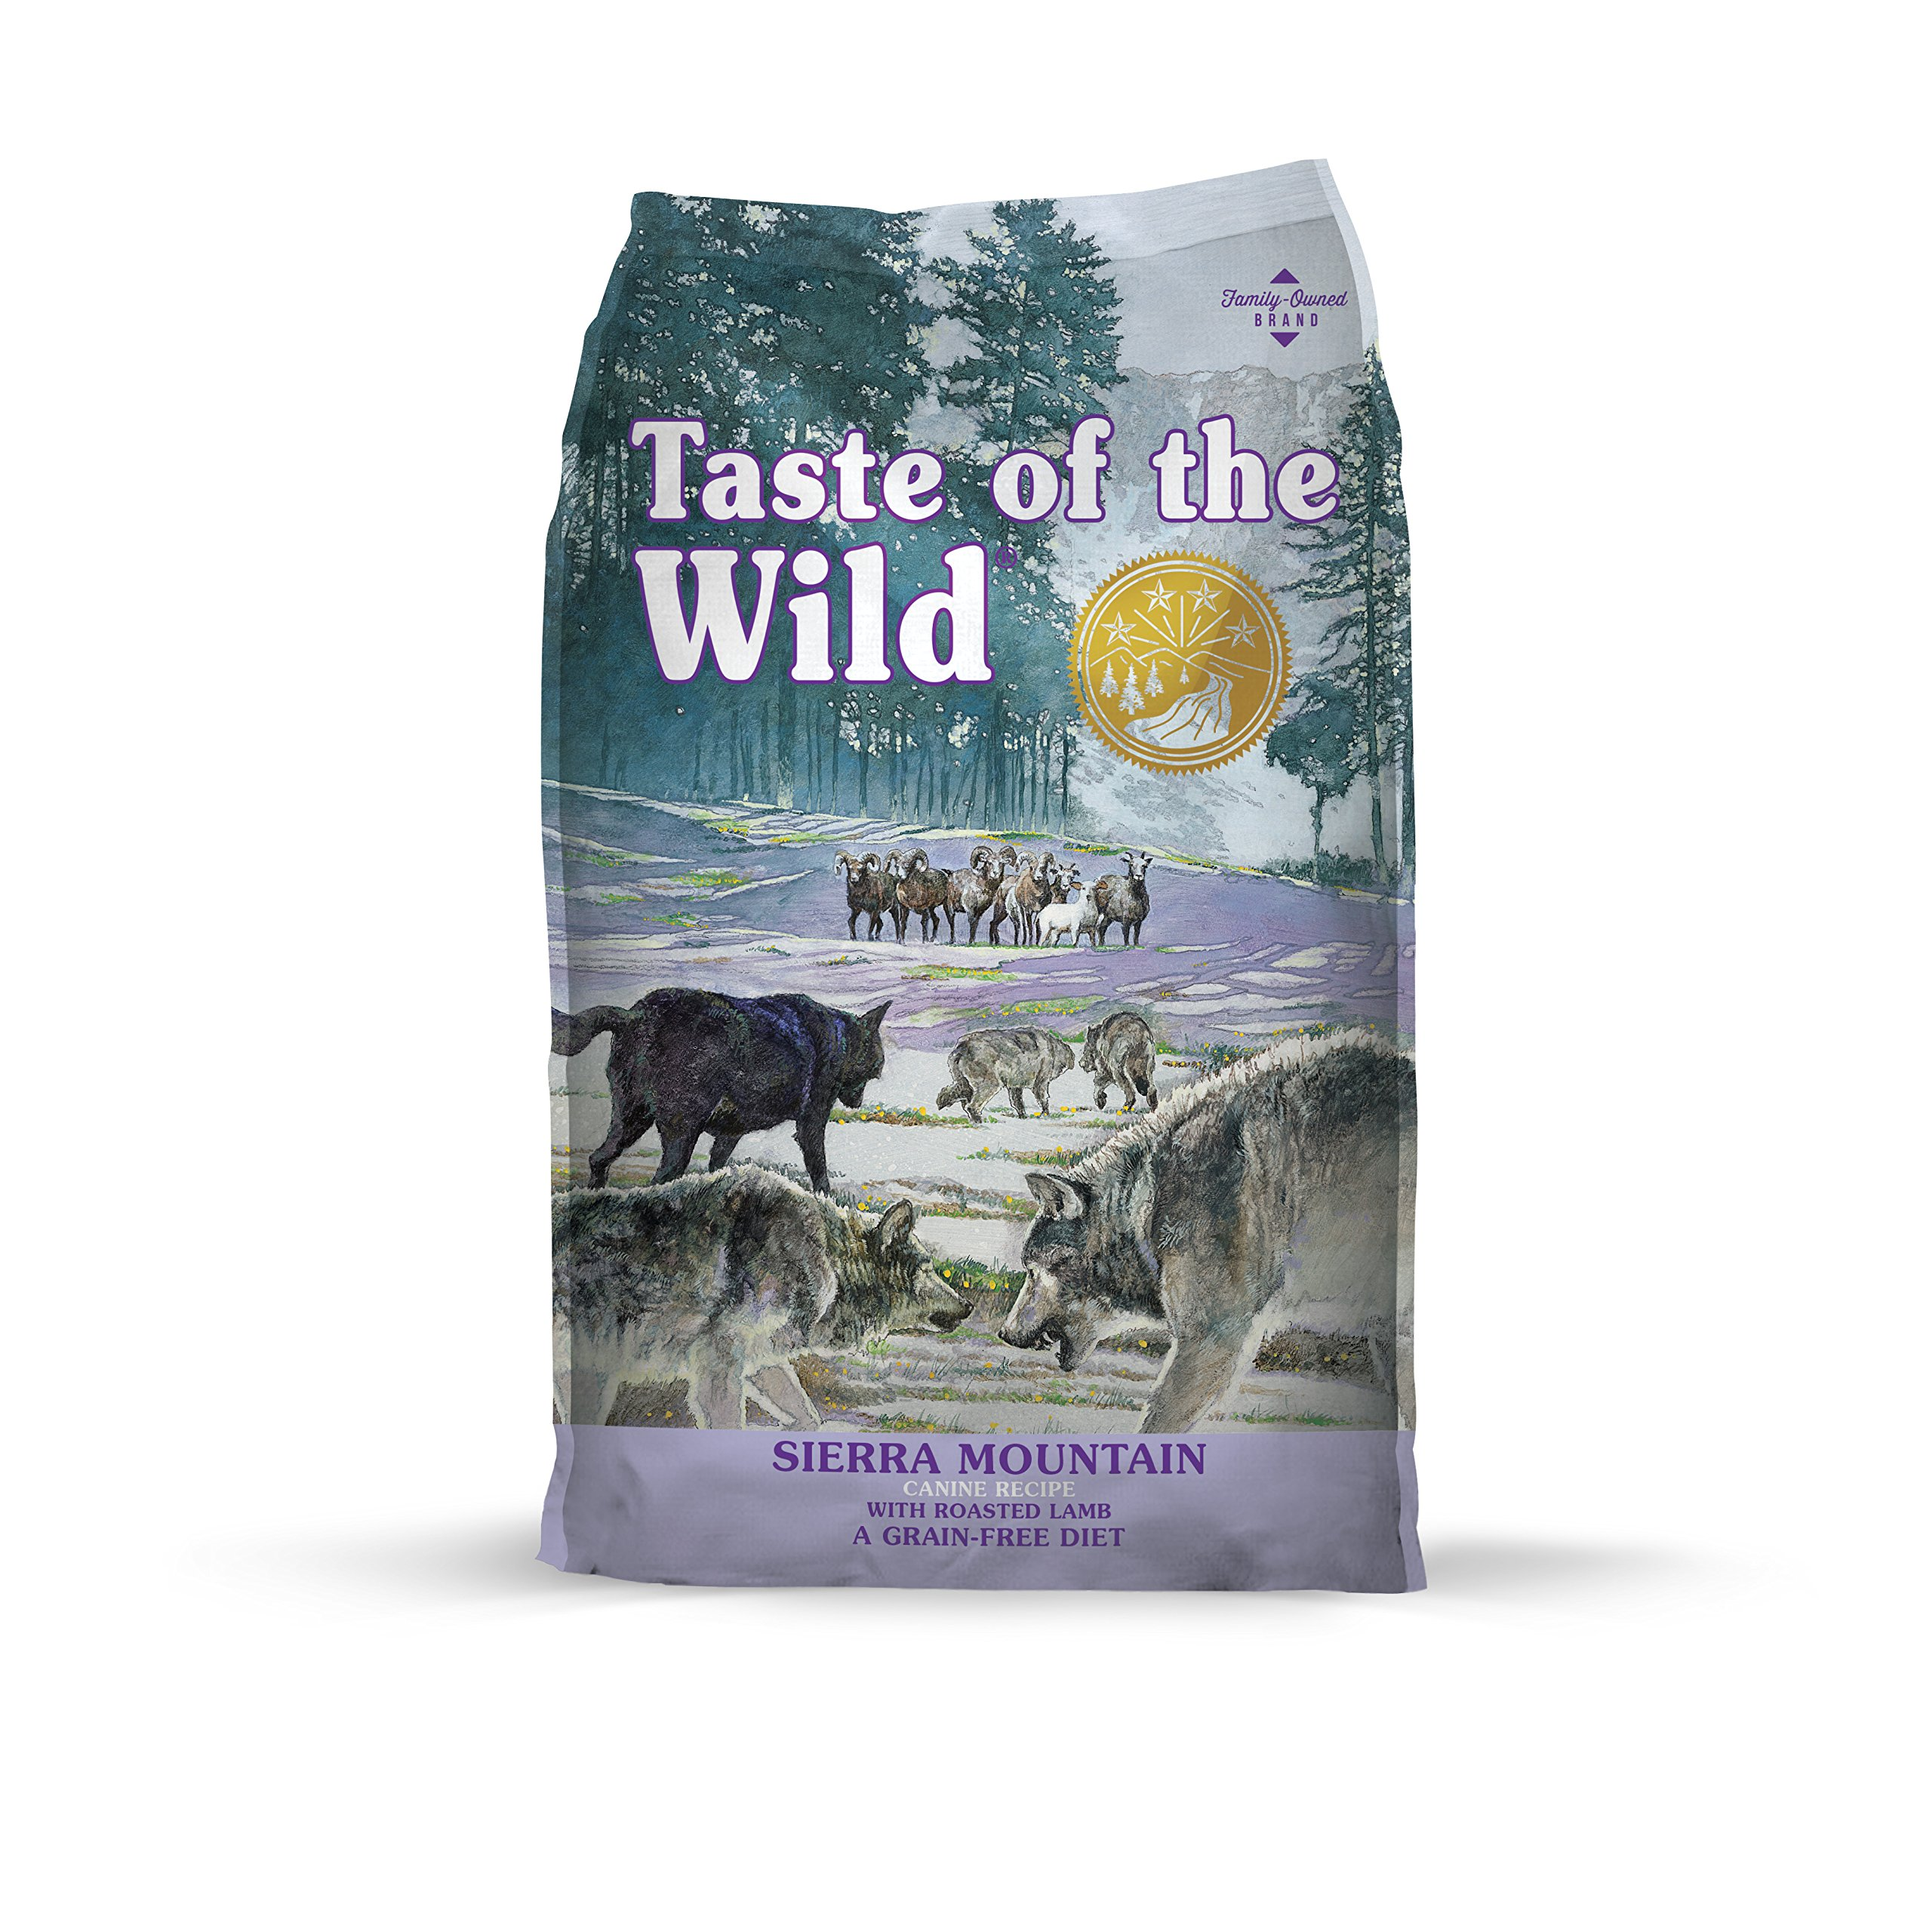 Taste of the Wild Grain Free High Protein Real Meat Recipe Sierra Mountain Premium Dry Dog Food, 28 lb by Taste of the Wild